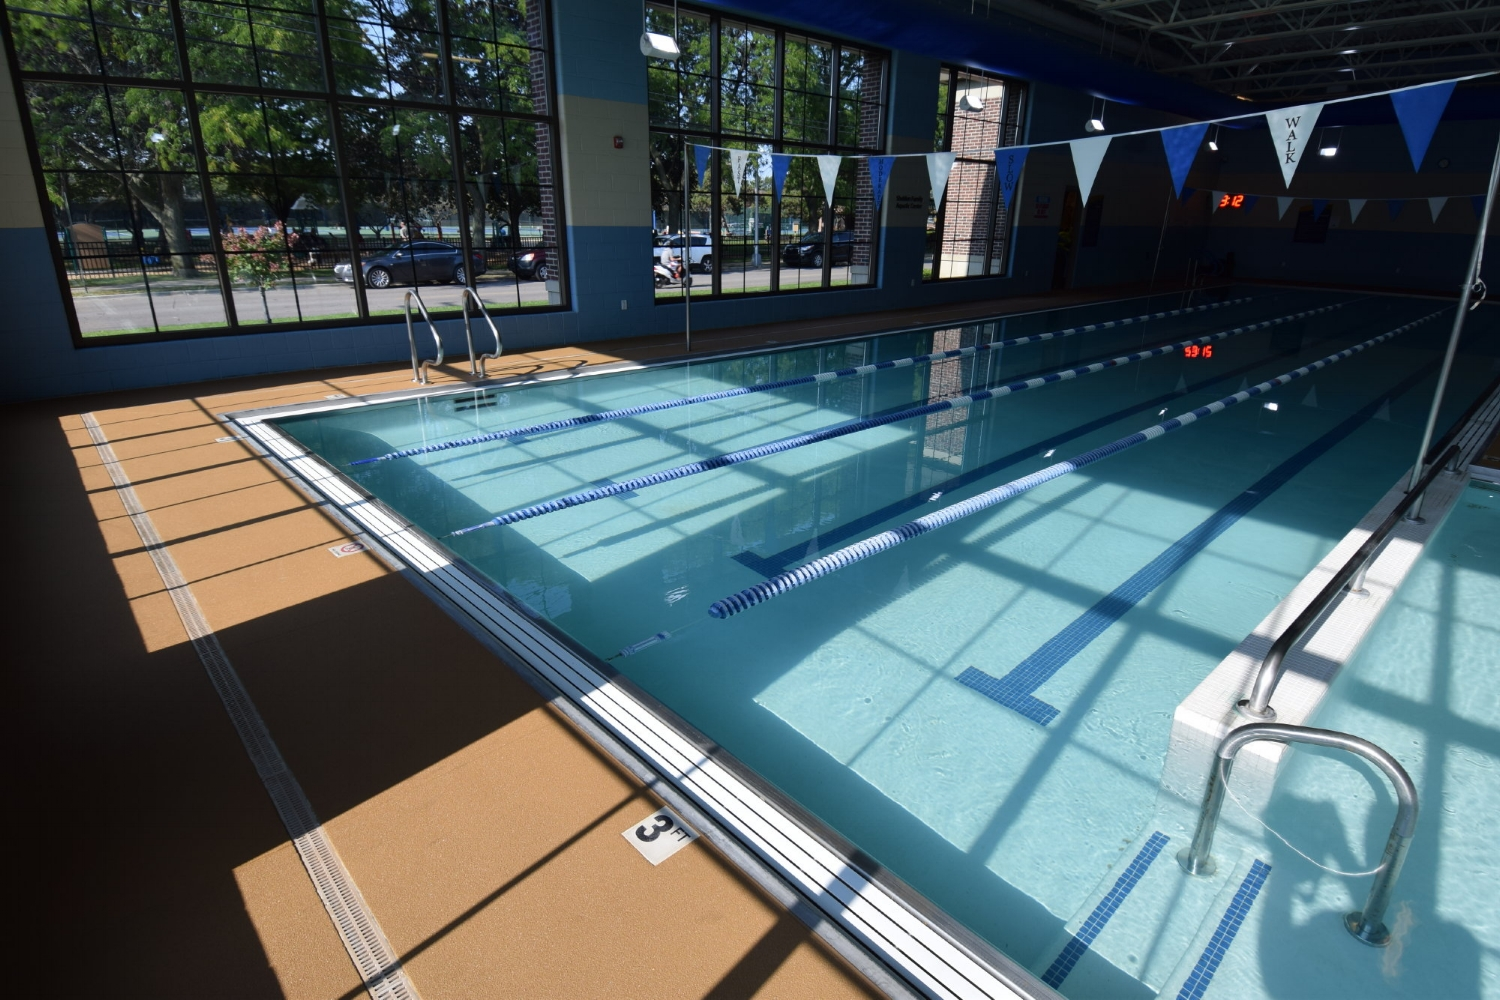 Commercial, Indoor Concrete Pool Deck After Resurfacing With Spray-Texture Decorative Cement Overlay